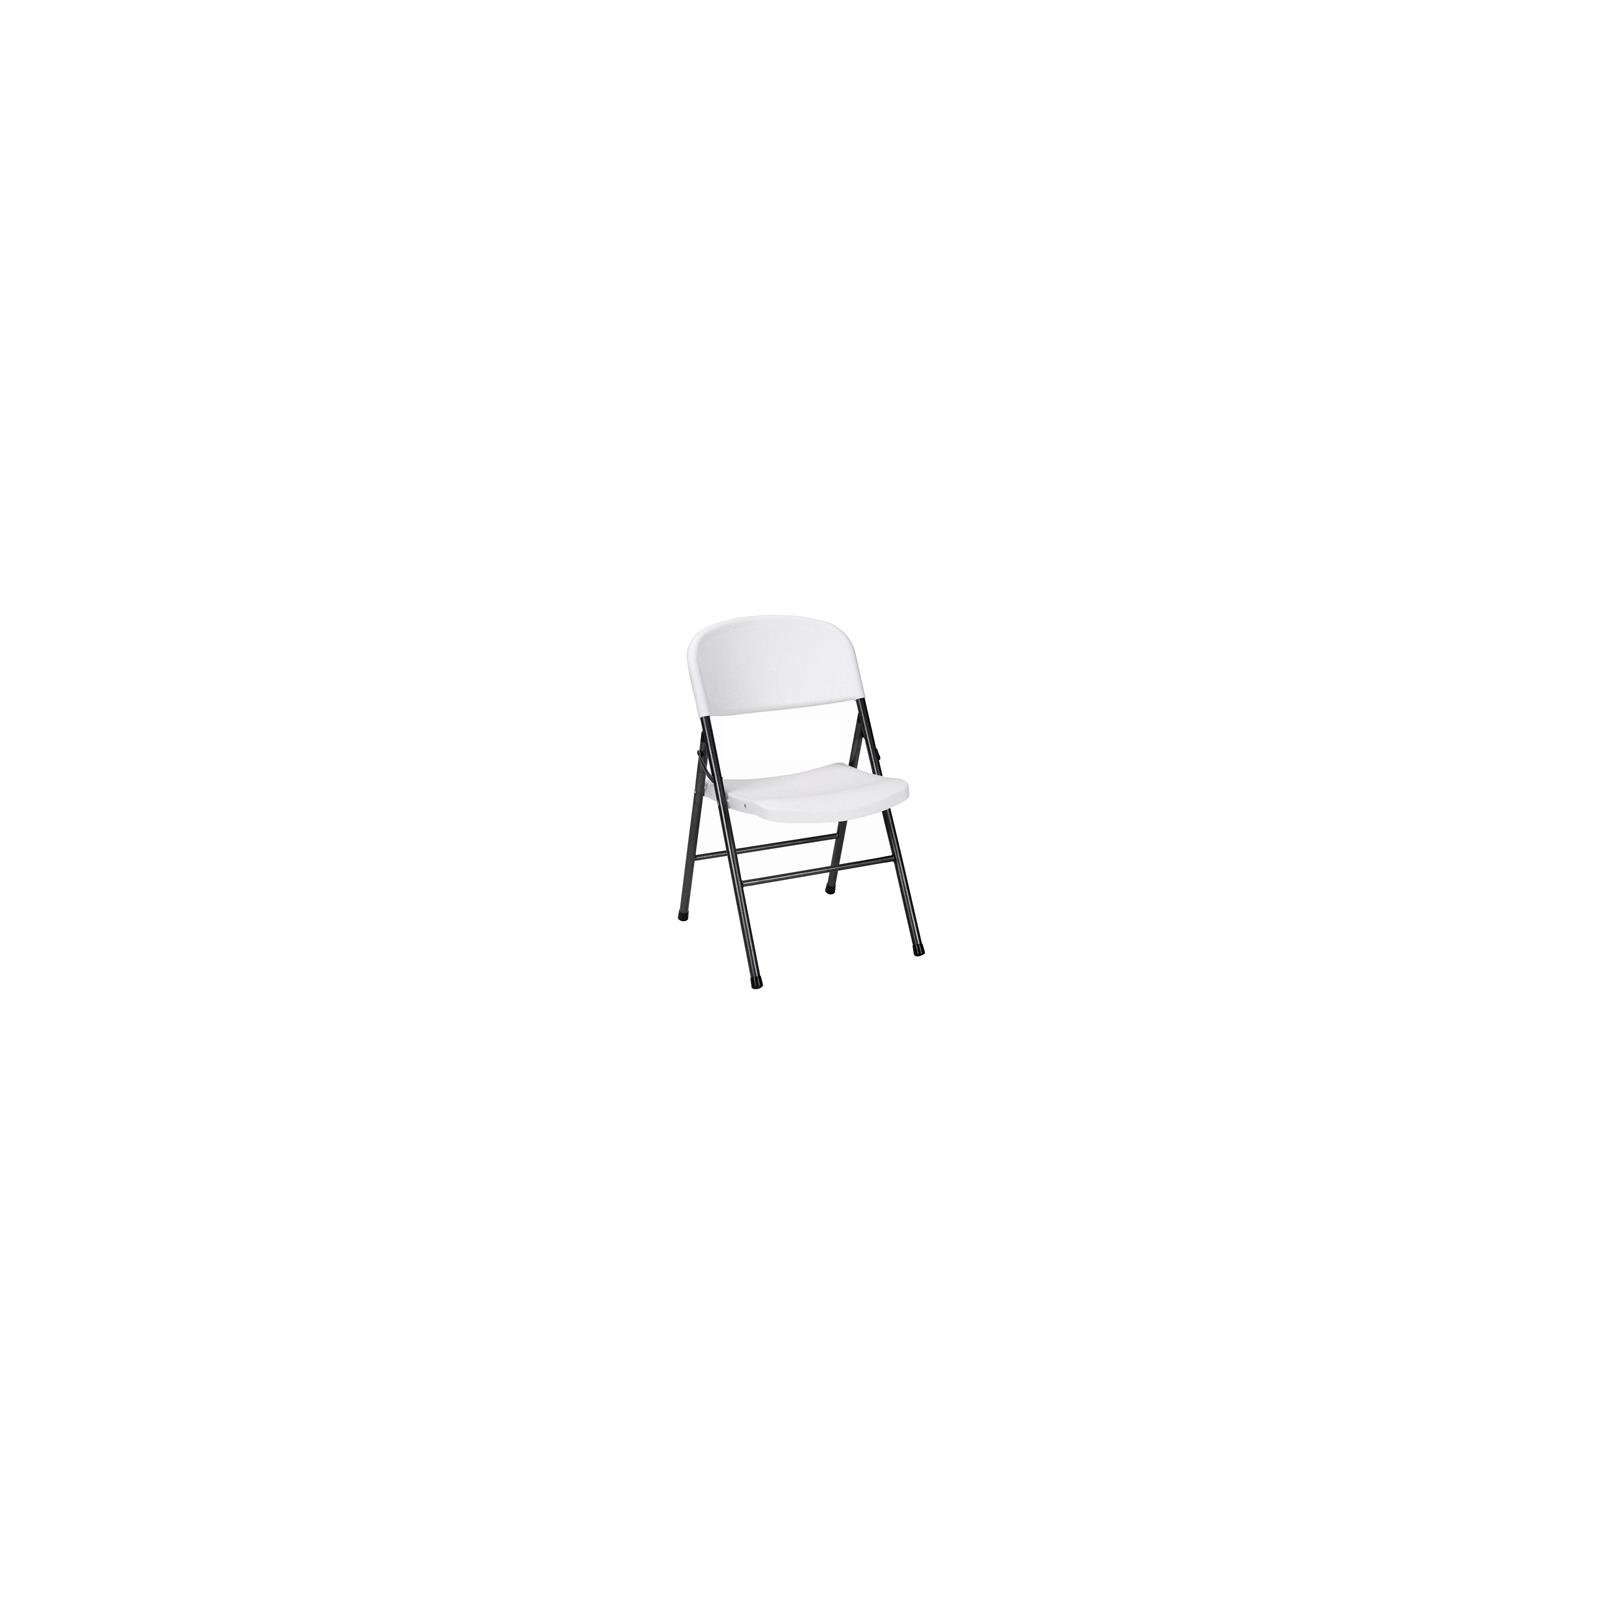 Cosco Inc 4 Packs WHT Speck Molded Chair